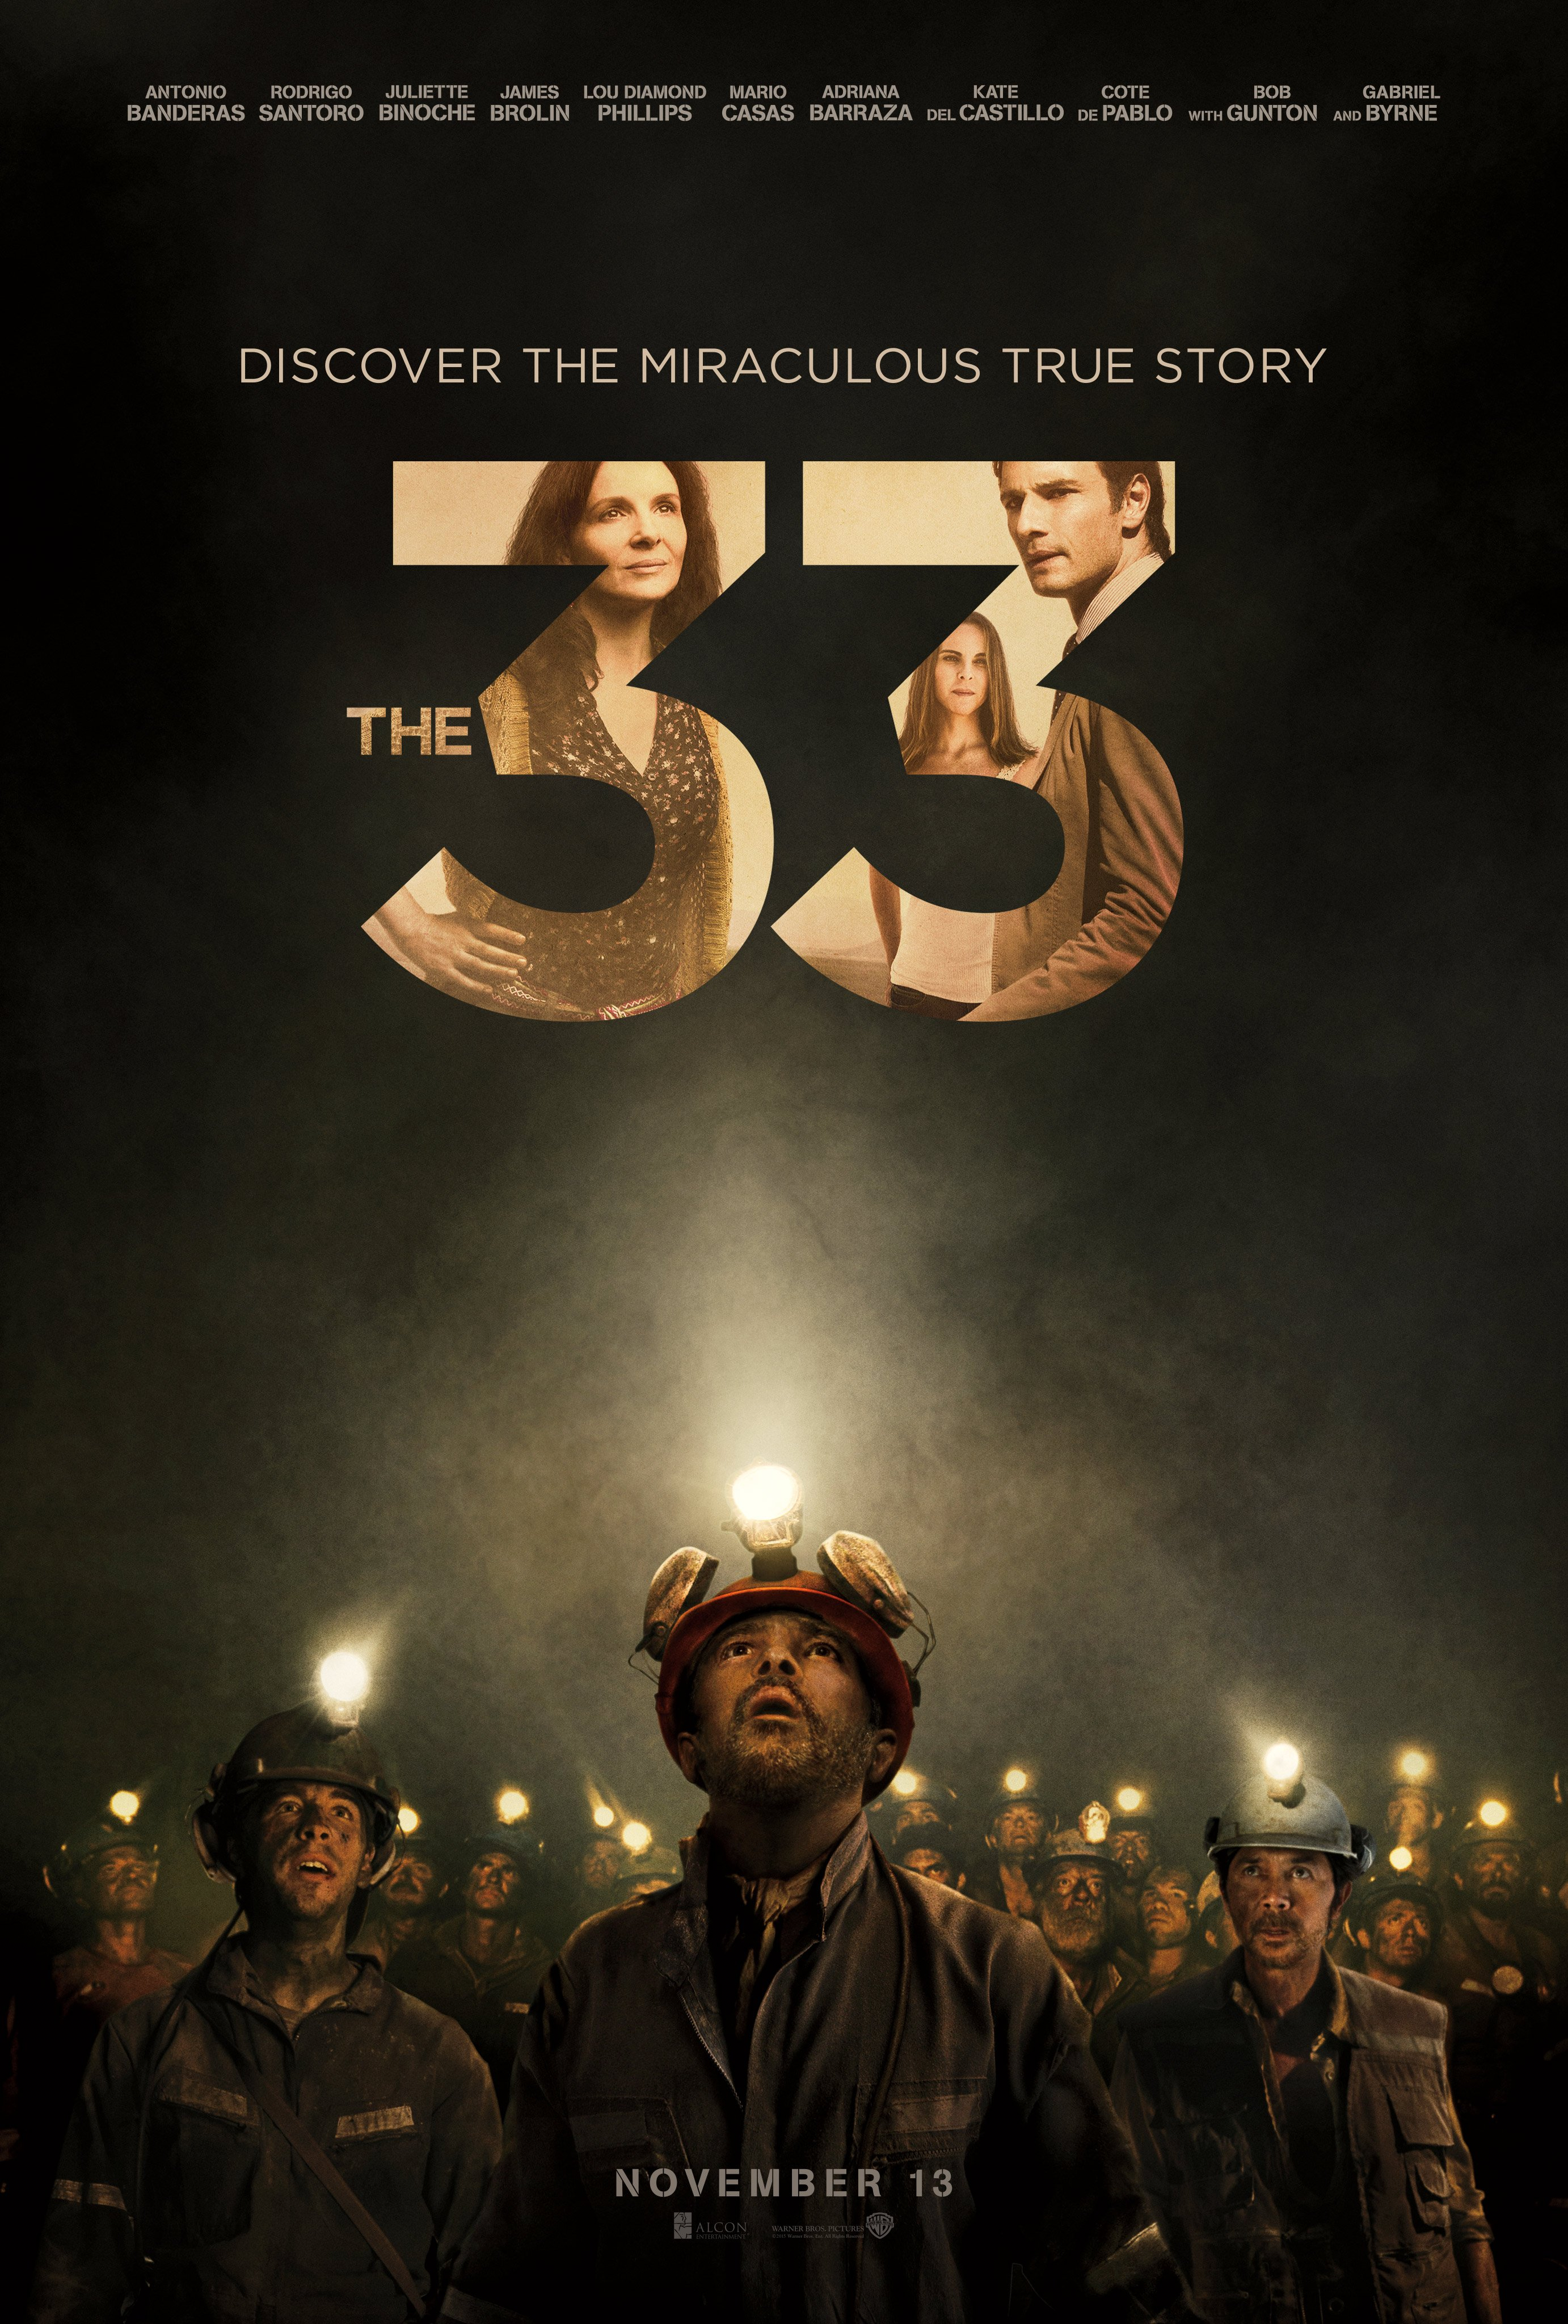 Chilean miner movie the 33 gets a new poster for Bureau 13 movie